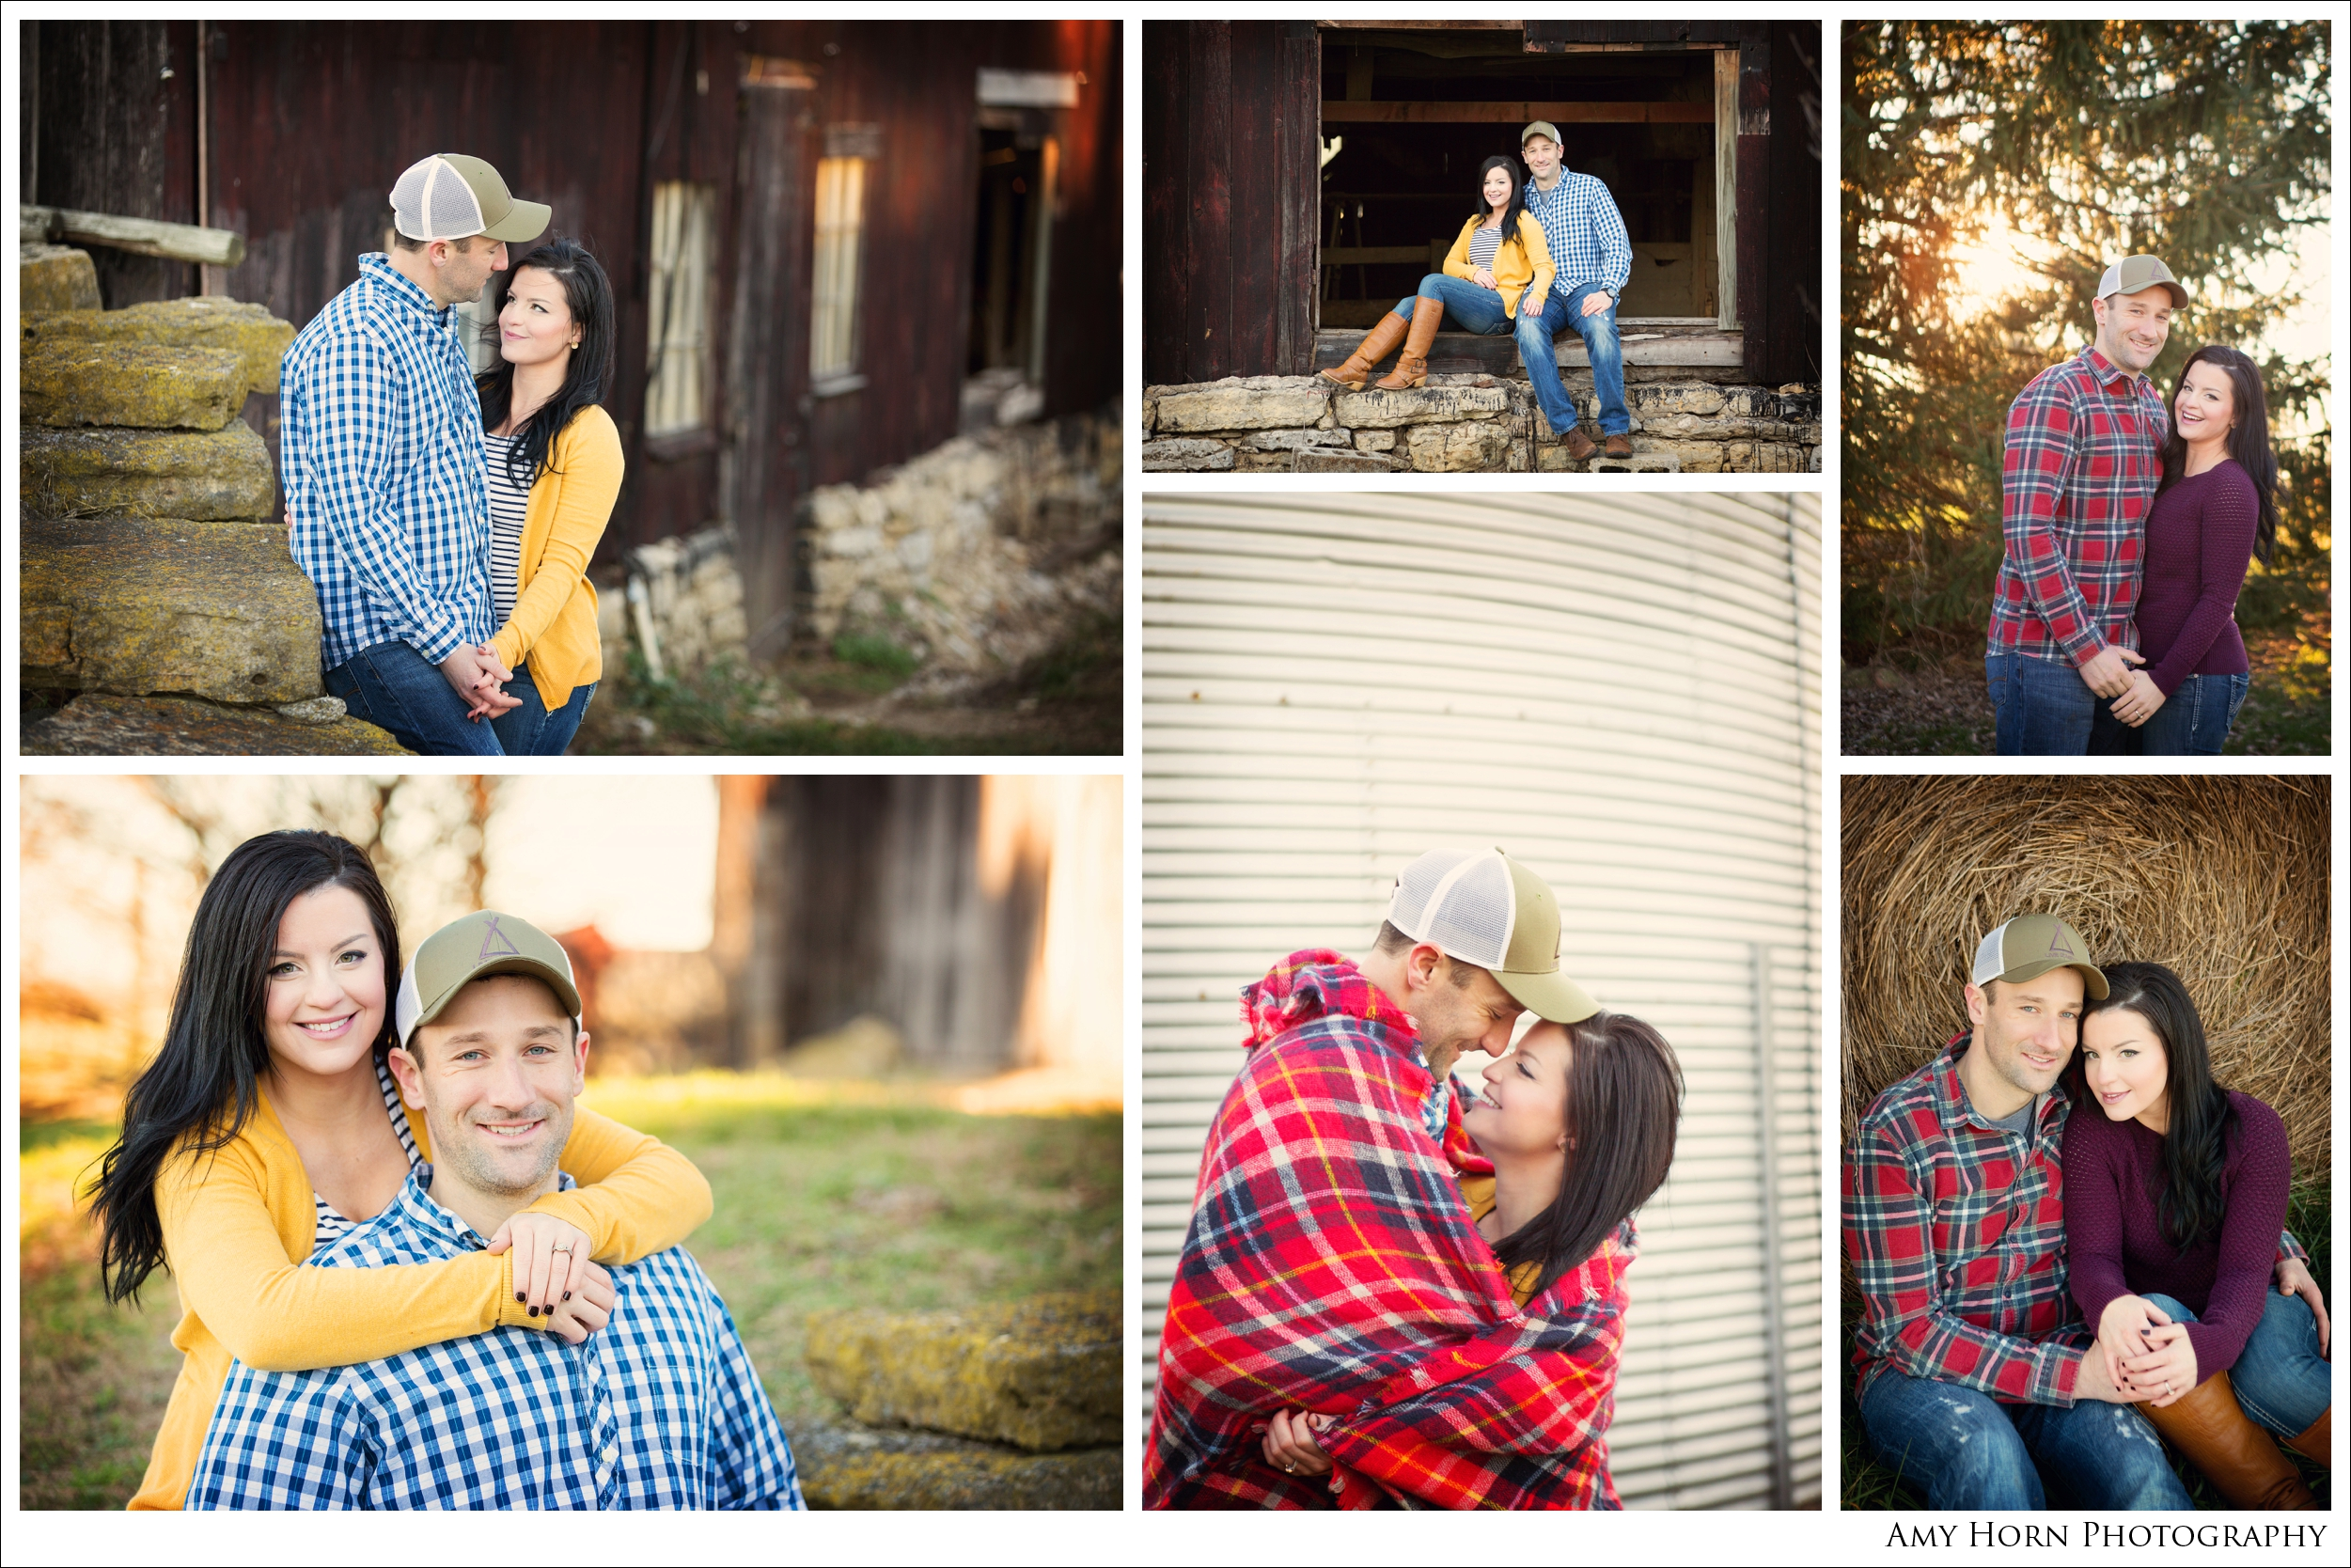 madison indiana engagement session, farm engagement session, farm photography, amy horn photography, country engagement session, lawrenceburg indiana photographer, madison indiana photographer,